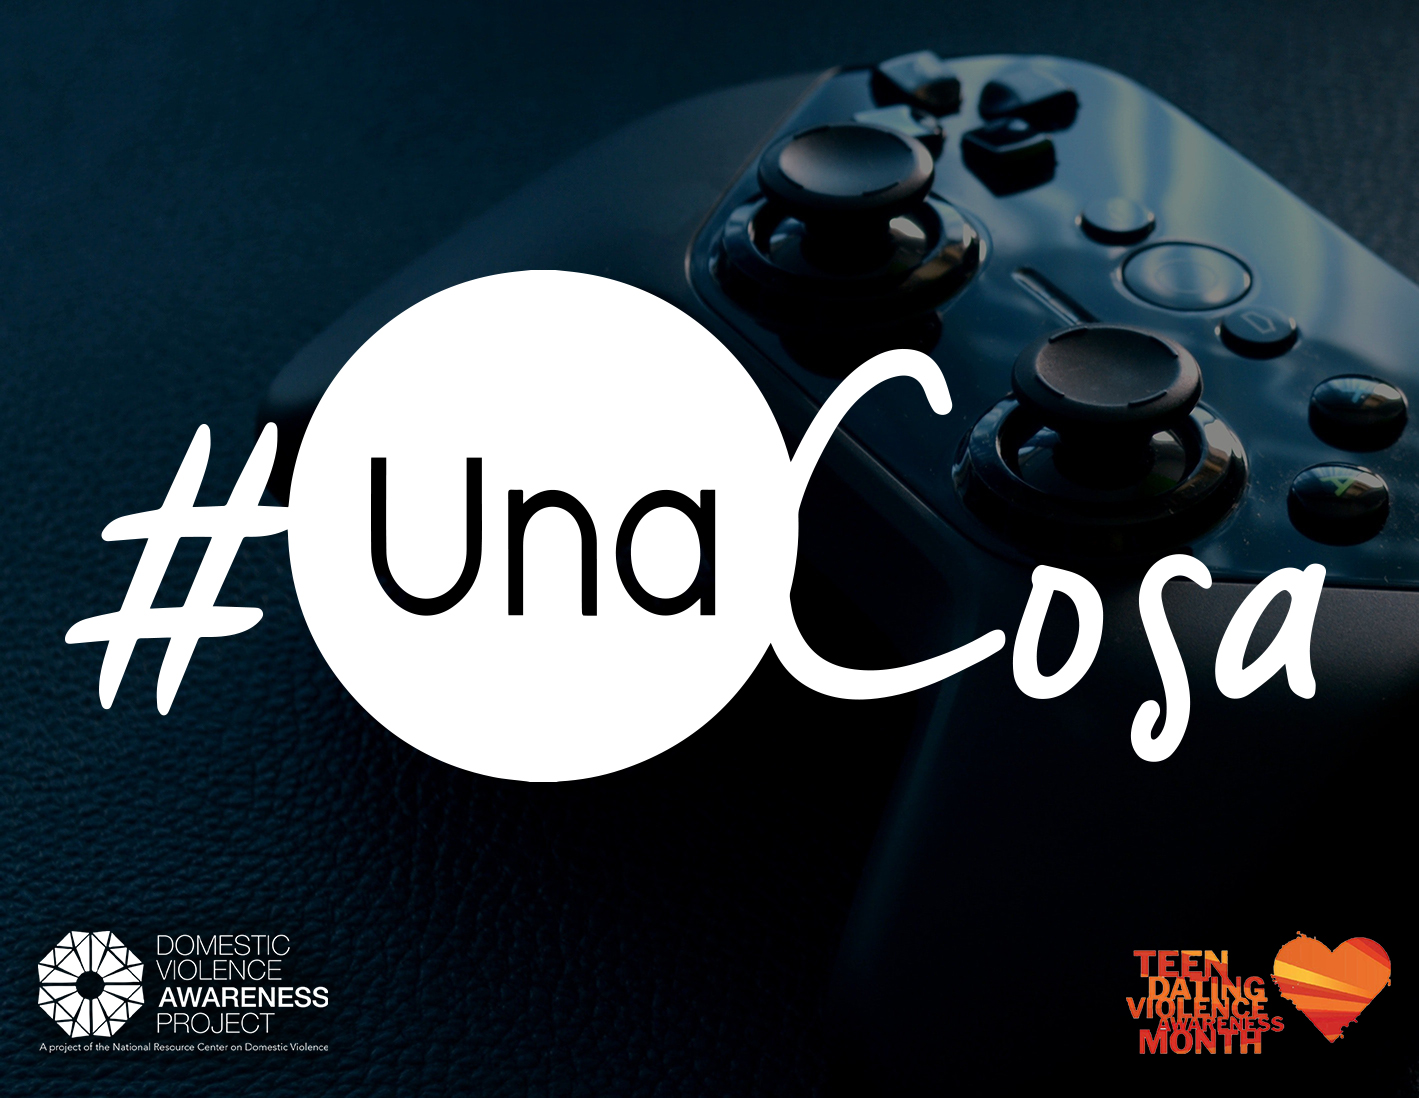 #UnaCosa logo imposed over image of gaming controller